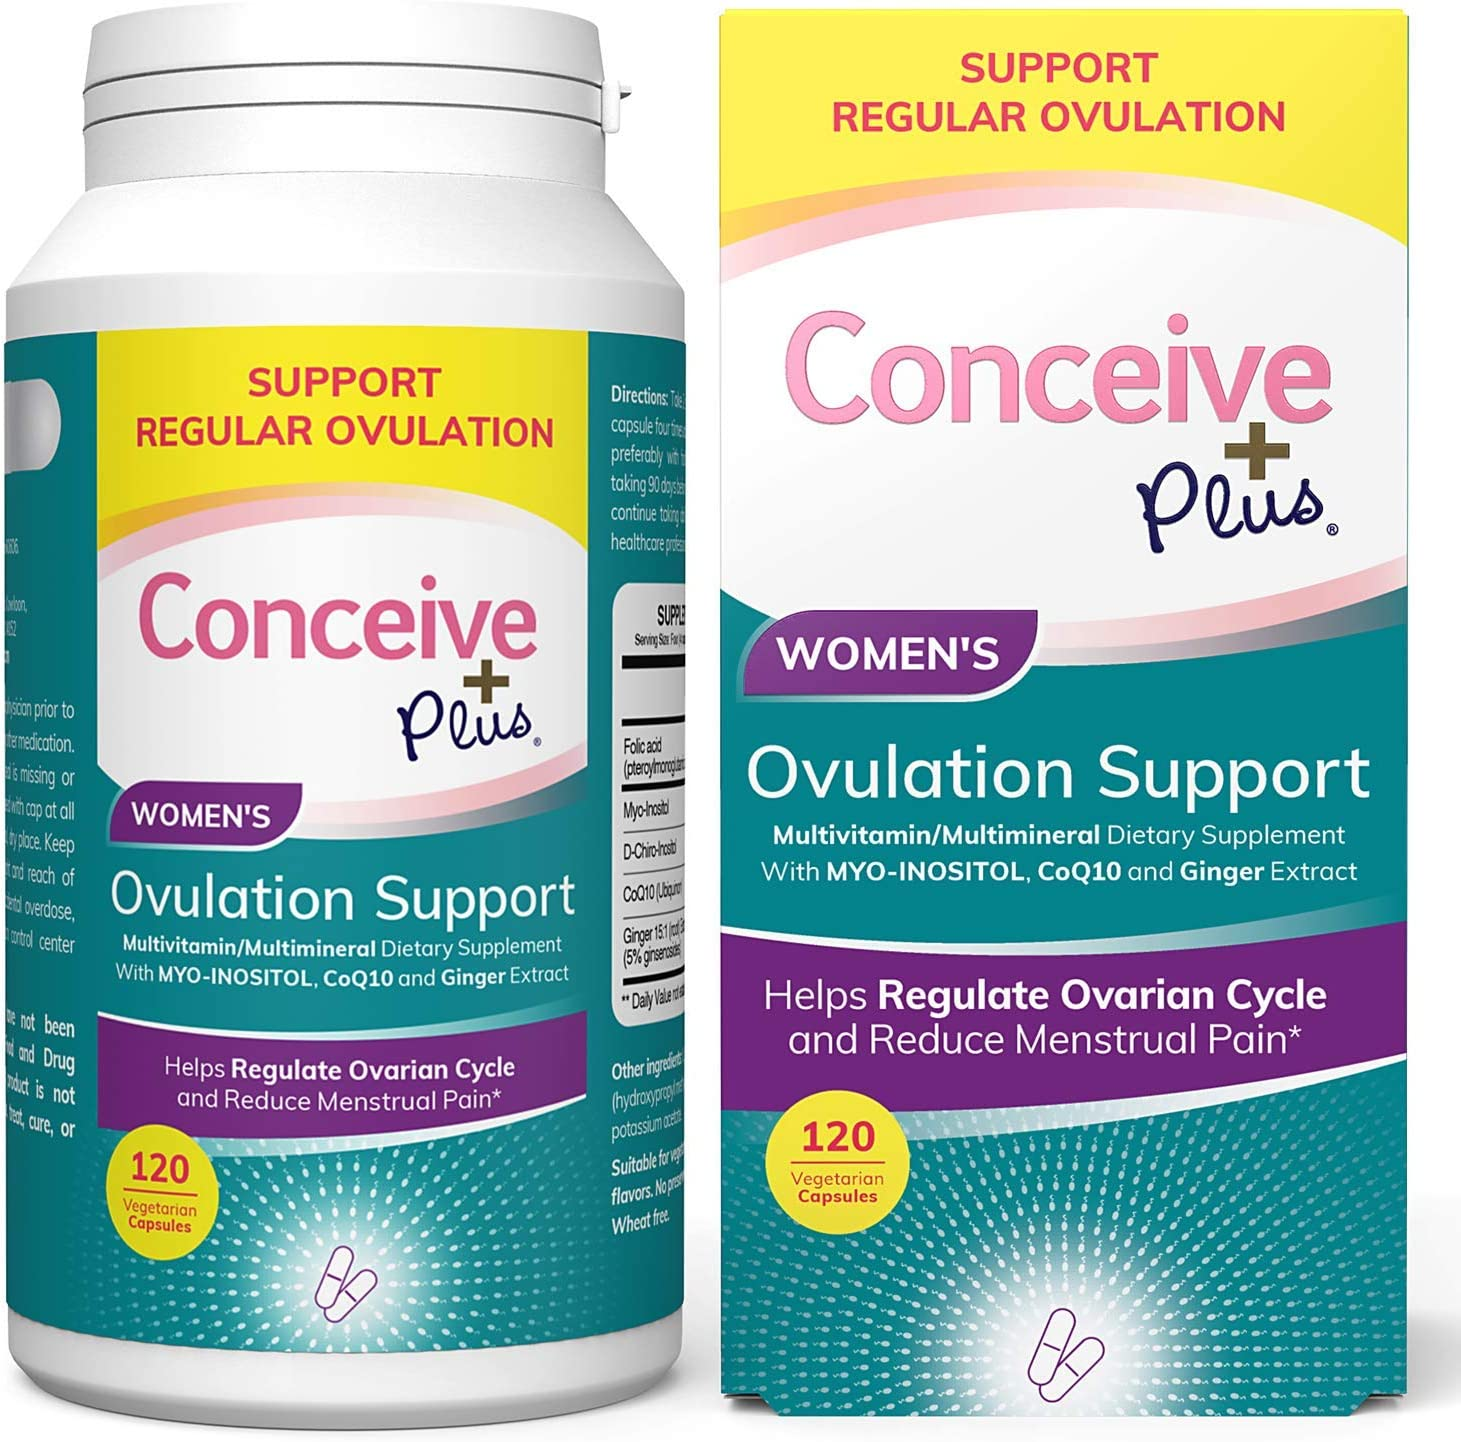 Sacramento Mall CONCEIVE PLUS Myo-Inositol D-Chiro Beauty products – Supply 30-Day Inositol